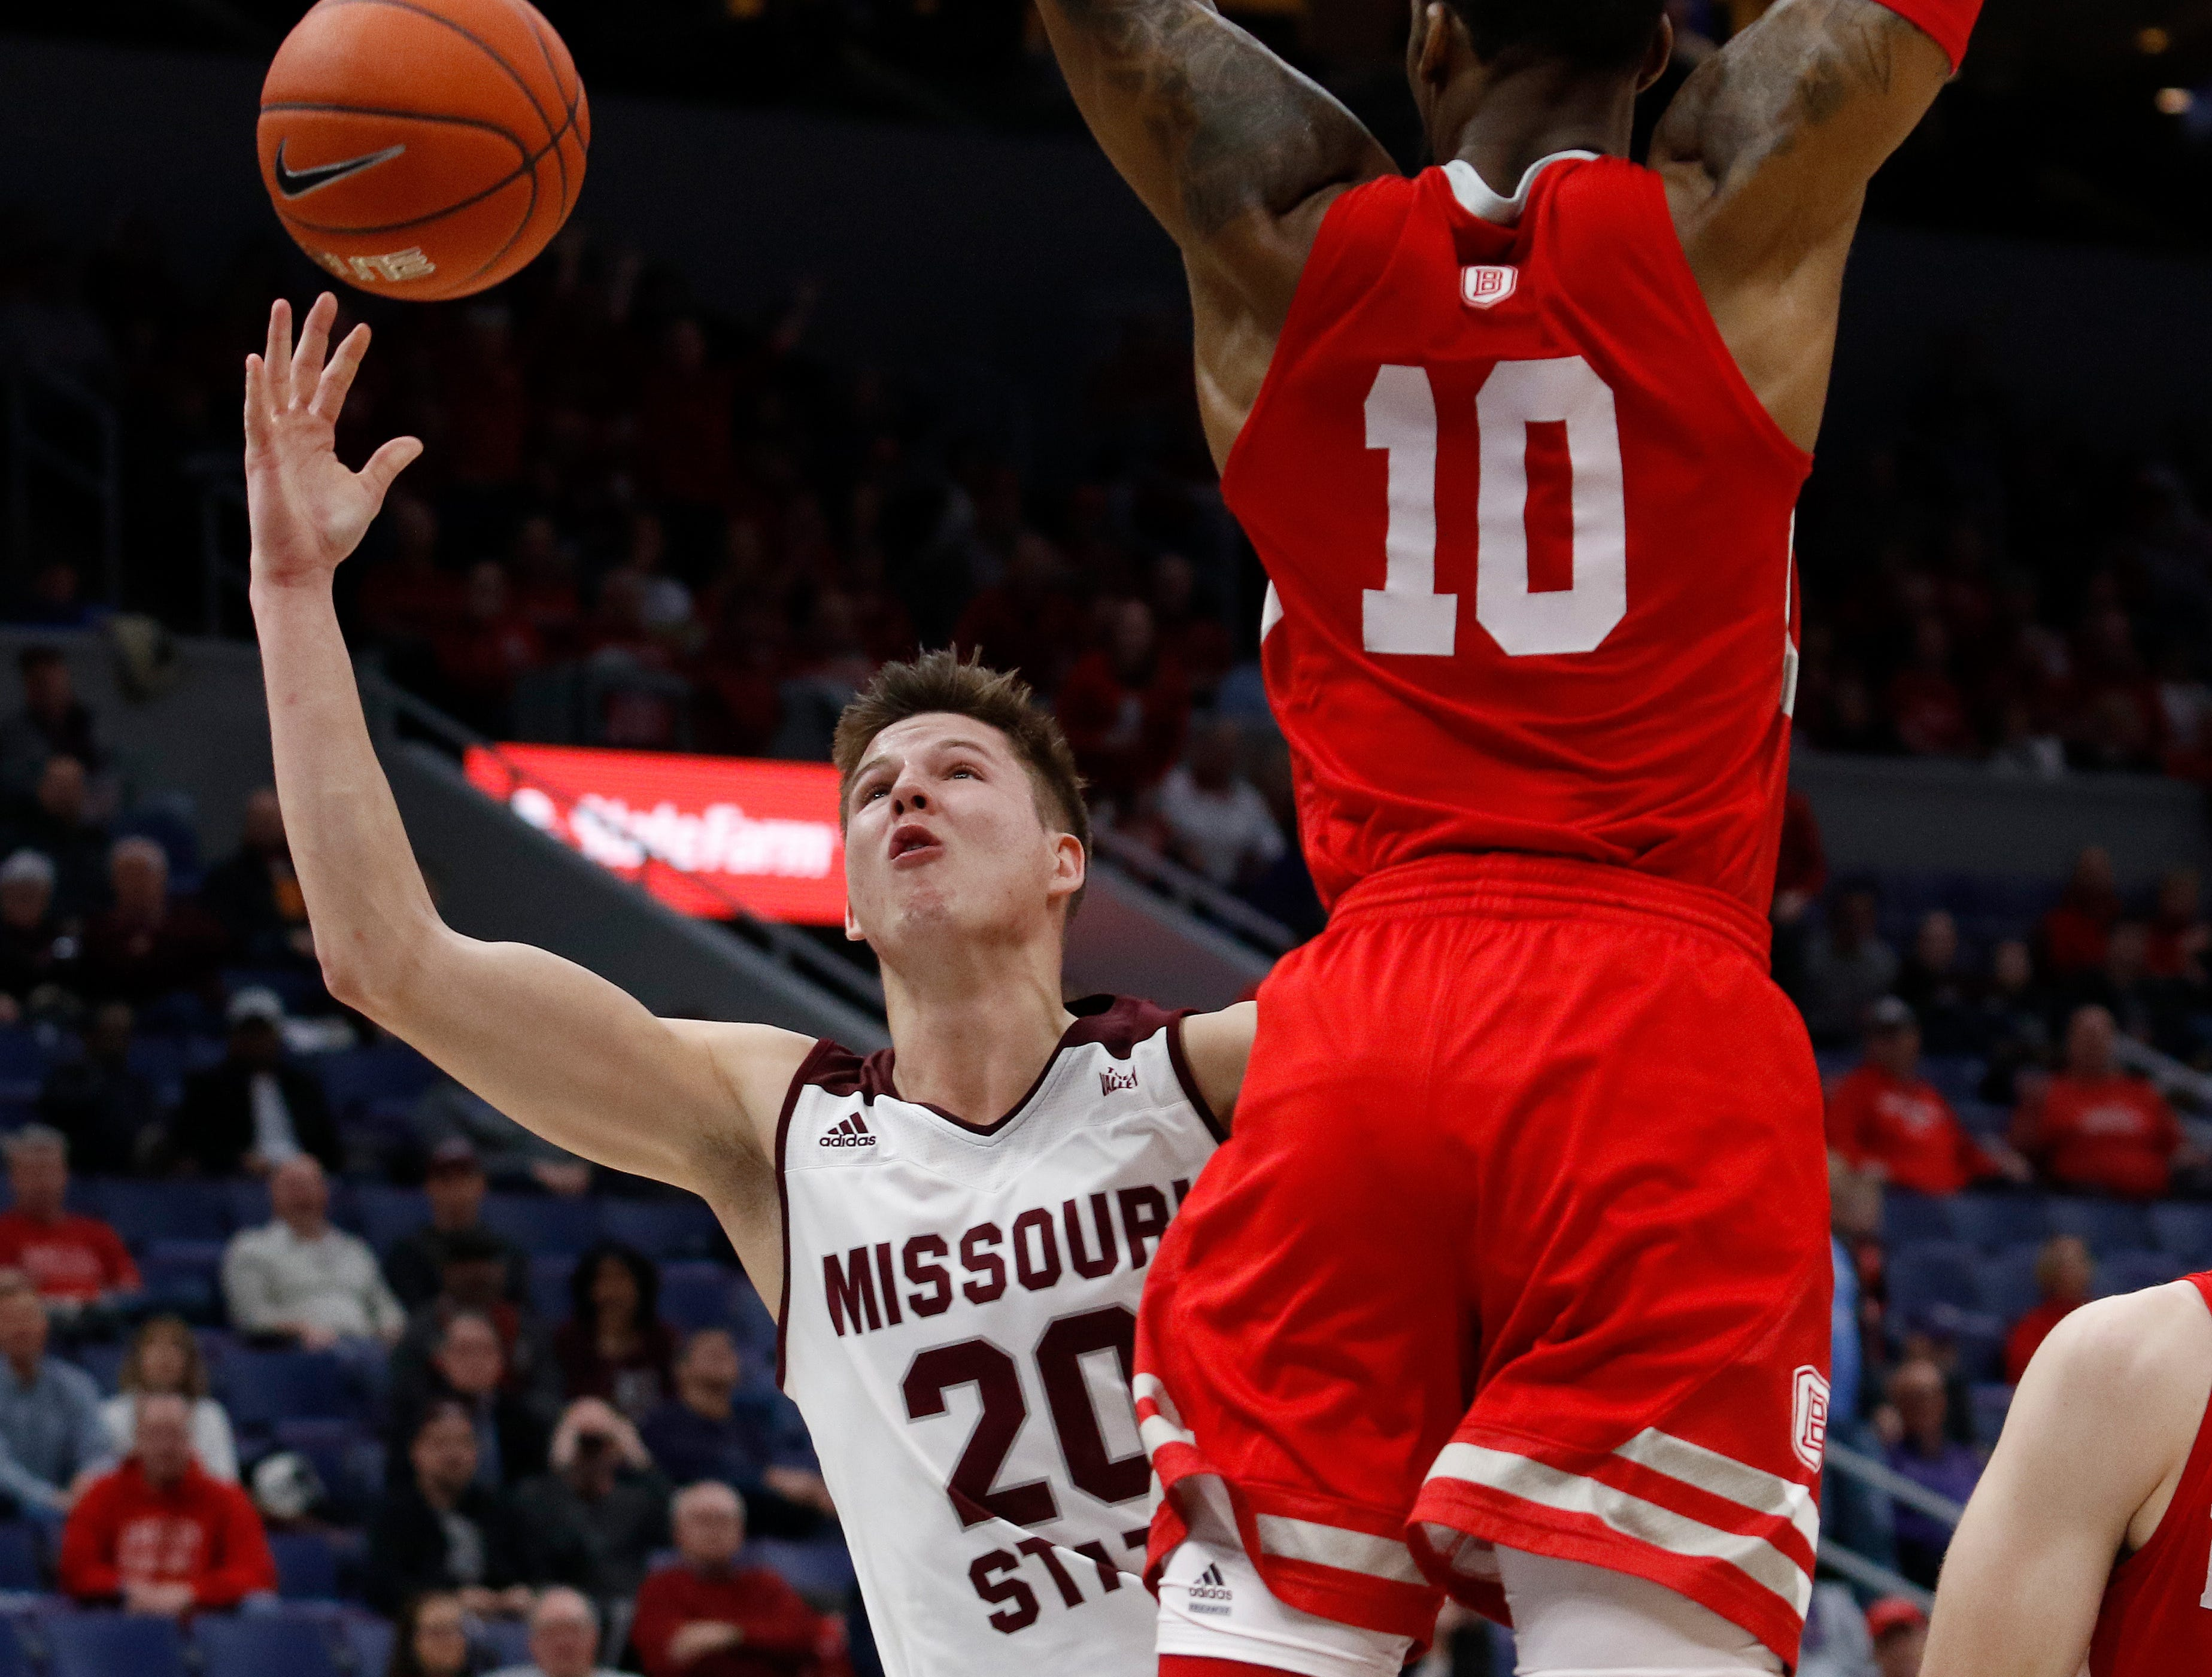 Missouri State's Ryan Kreklow (20) drives the ball defended by Bradley's Elijah Childs (10), Friday, March 8, 2019, at the Enterprise Center in St. Louis.